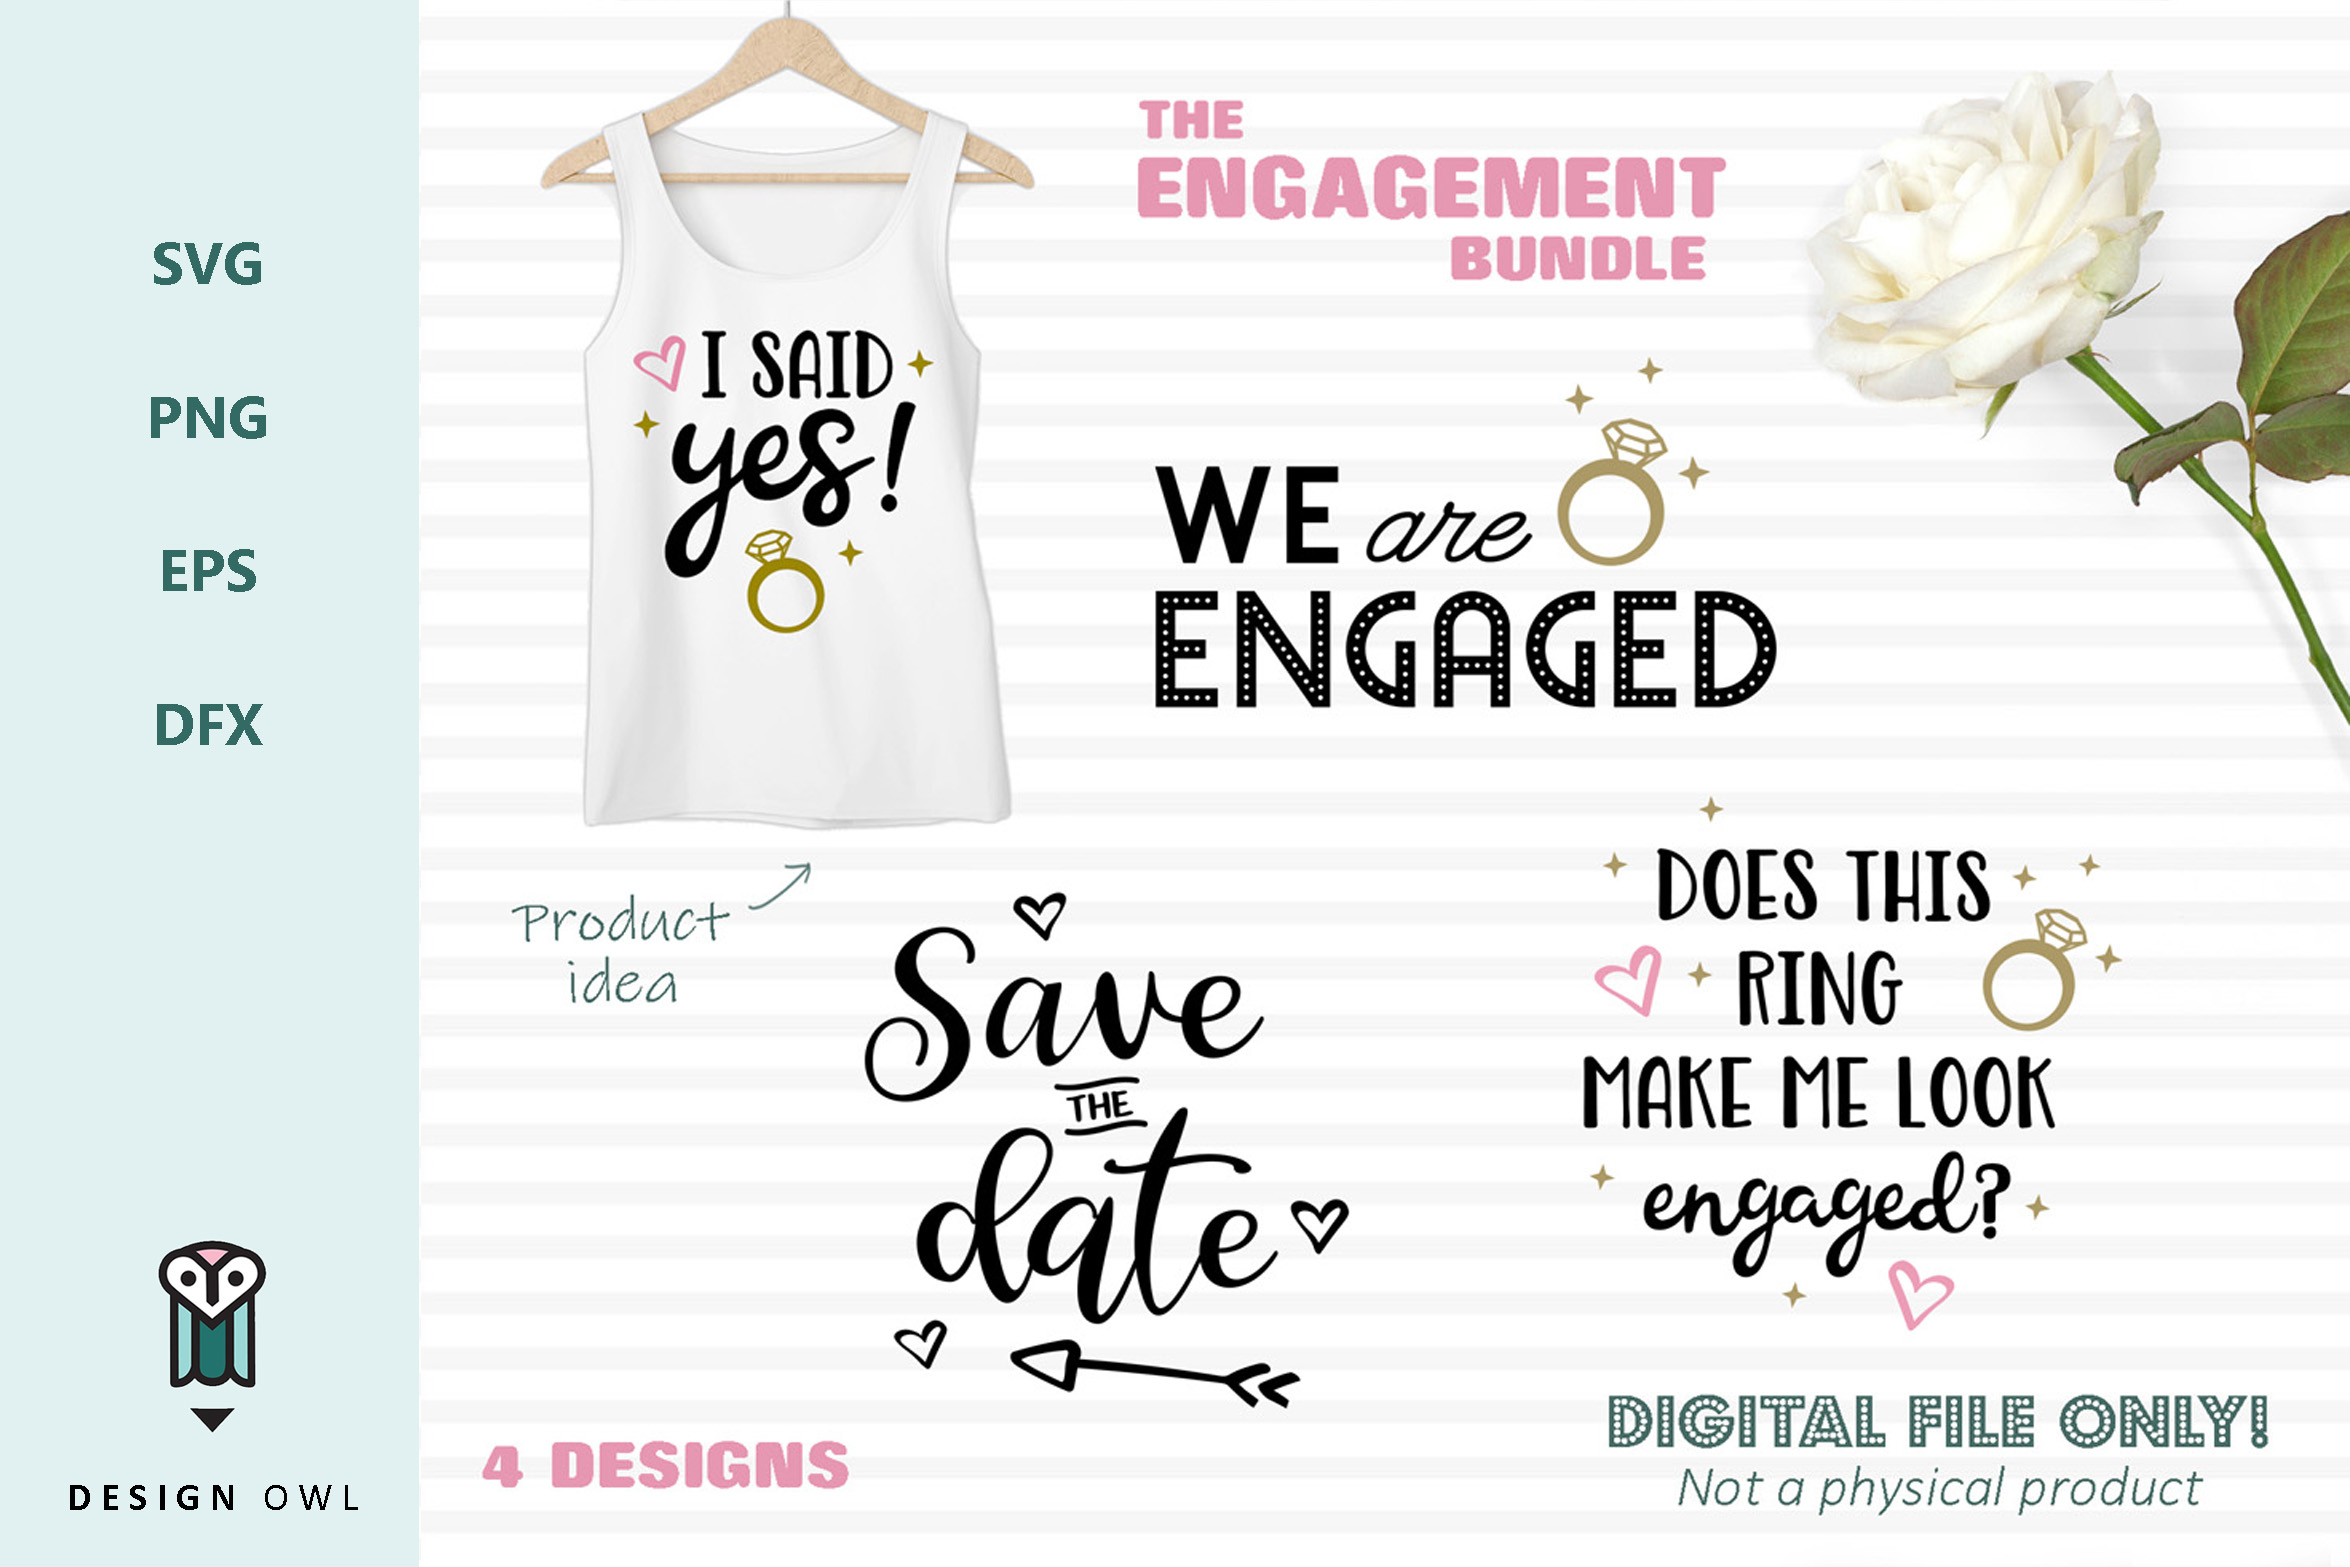 Download Free The Engagement Bundle Graphic By Design Owl Creative Fabrica for Cricut Explore, Silhouette and other cutting machines.